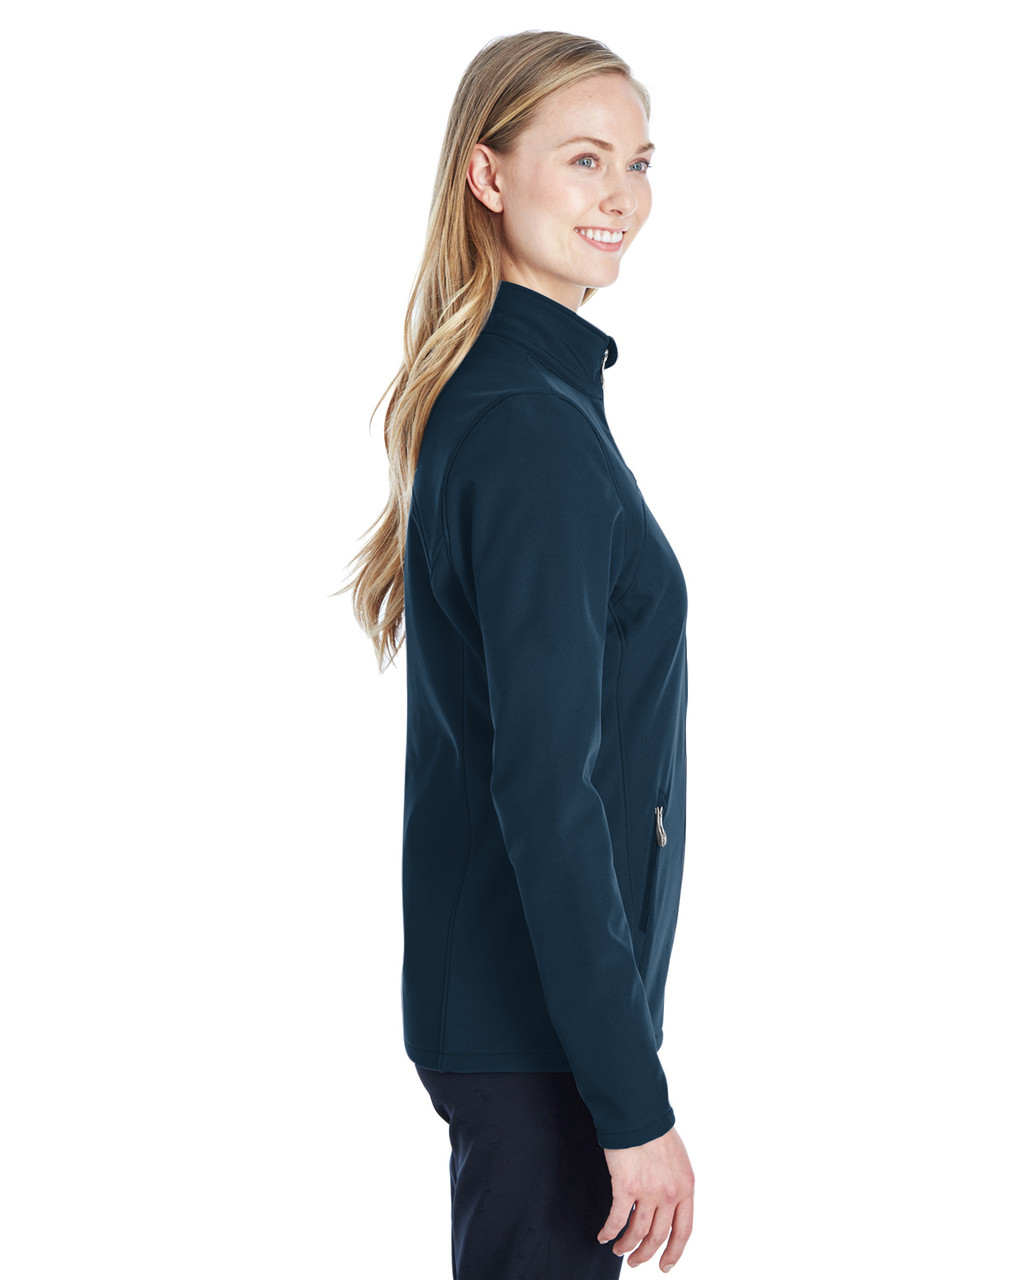 Frontire/Black, Side - 187337 Spyder Ladies' Transport Softshell Jacket | BlankClothing.ca